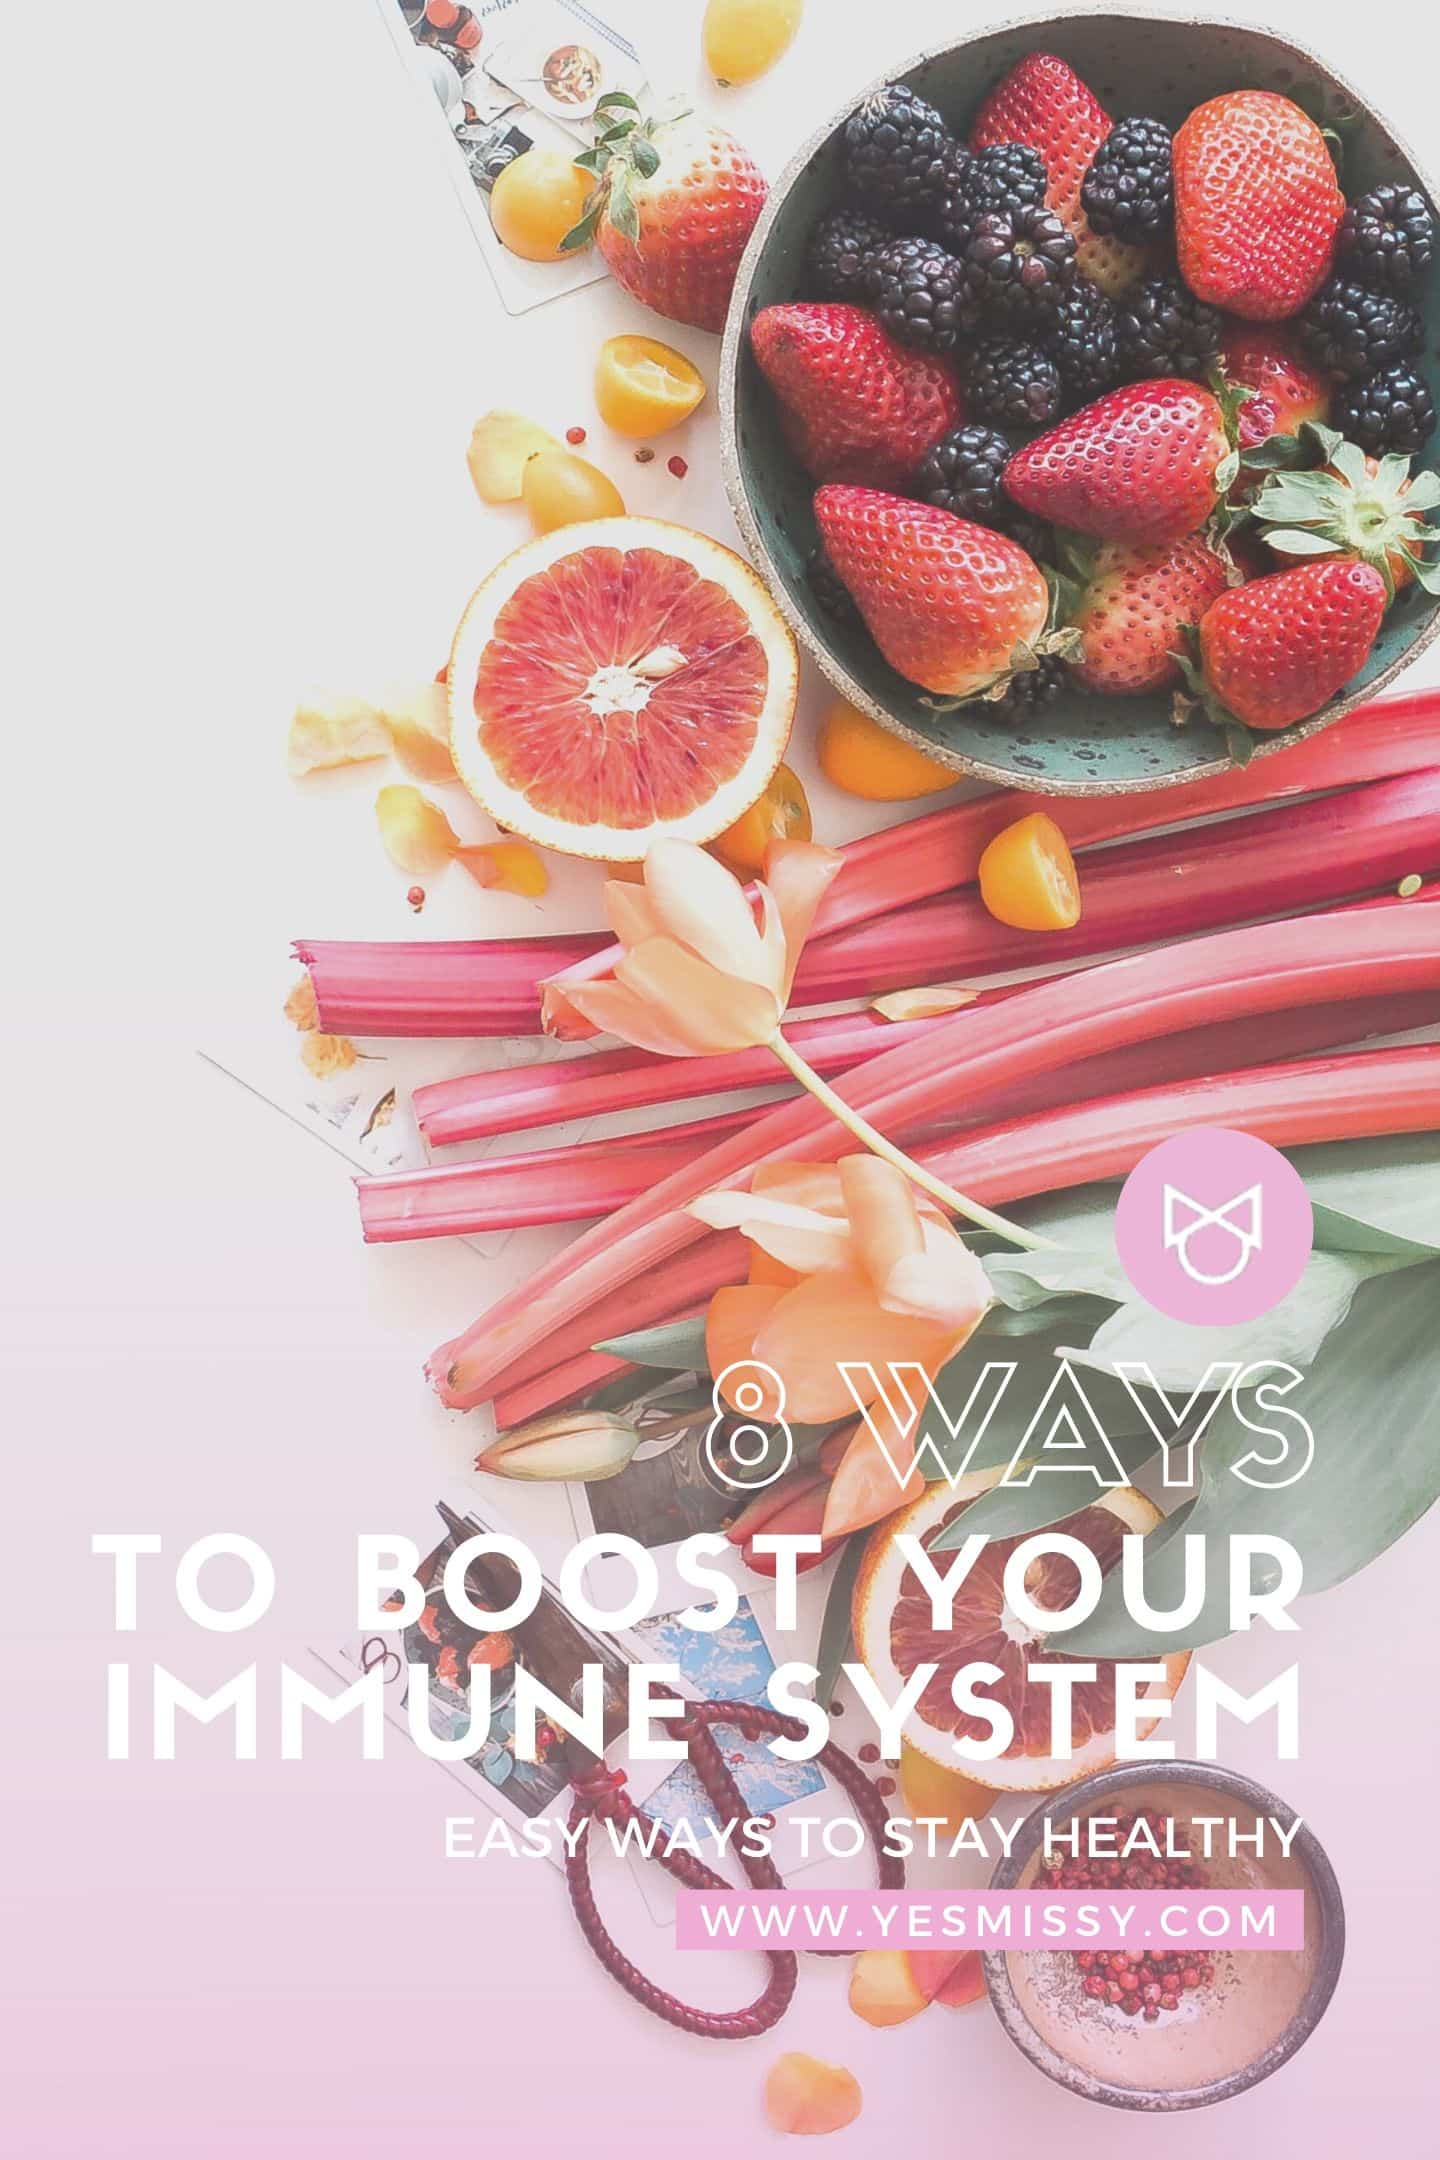 8 ways to boost your immune system - When your immune system is strong, you have a better chance of fighting off colds, flus and other infections.